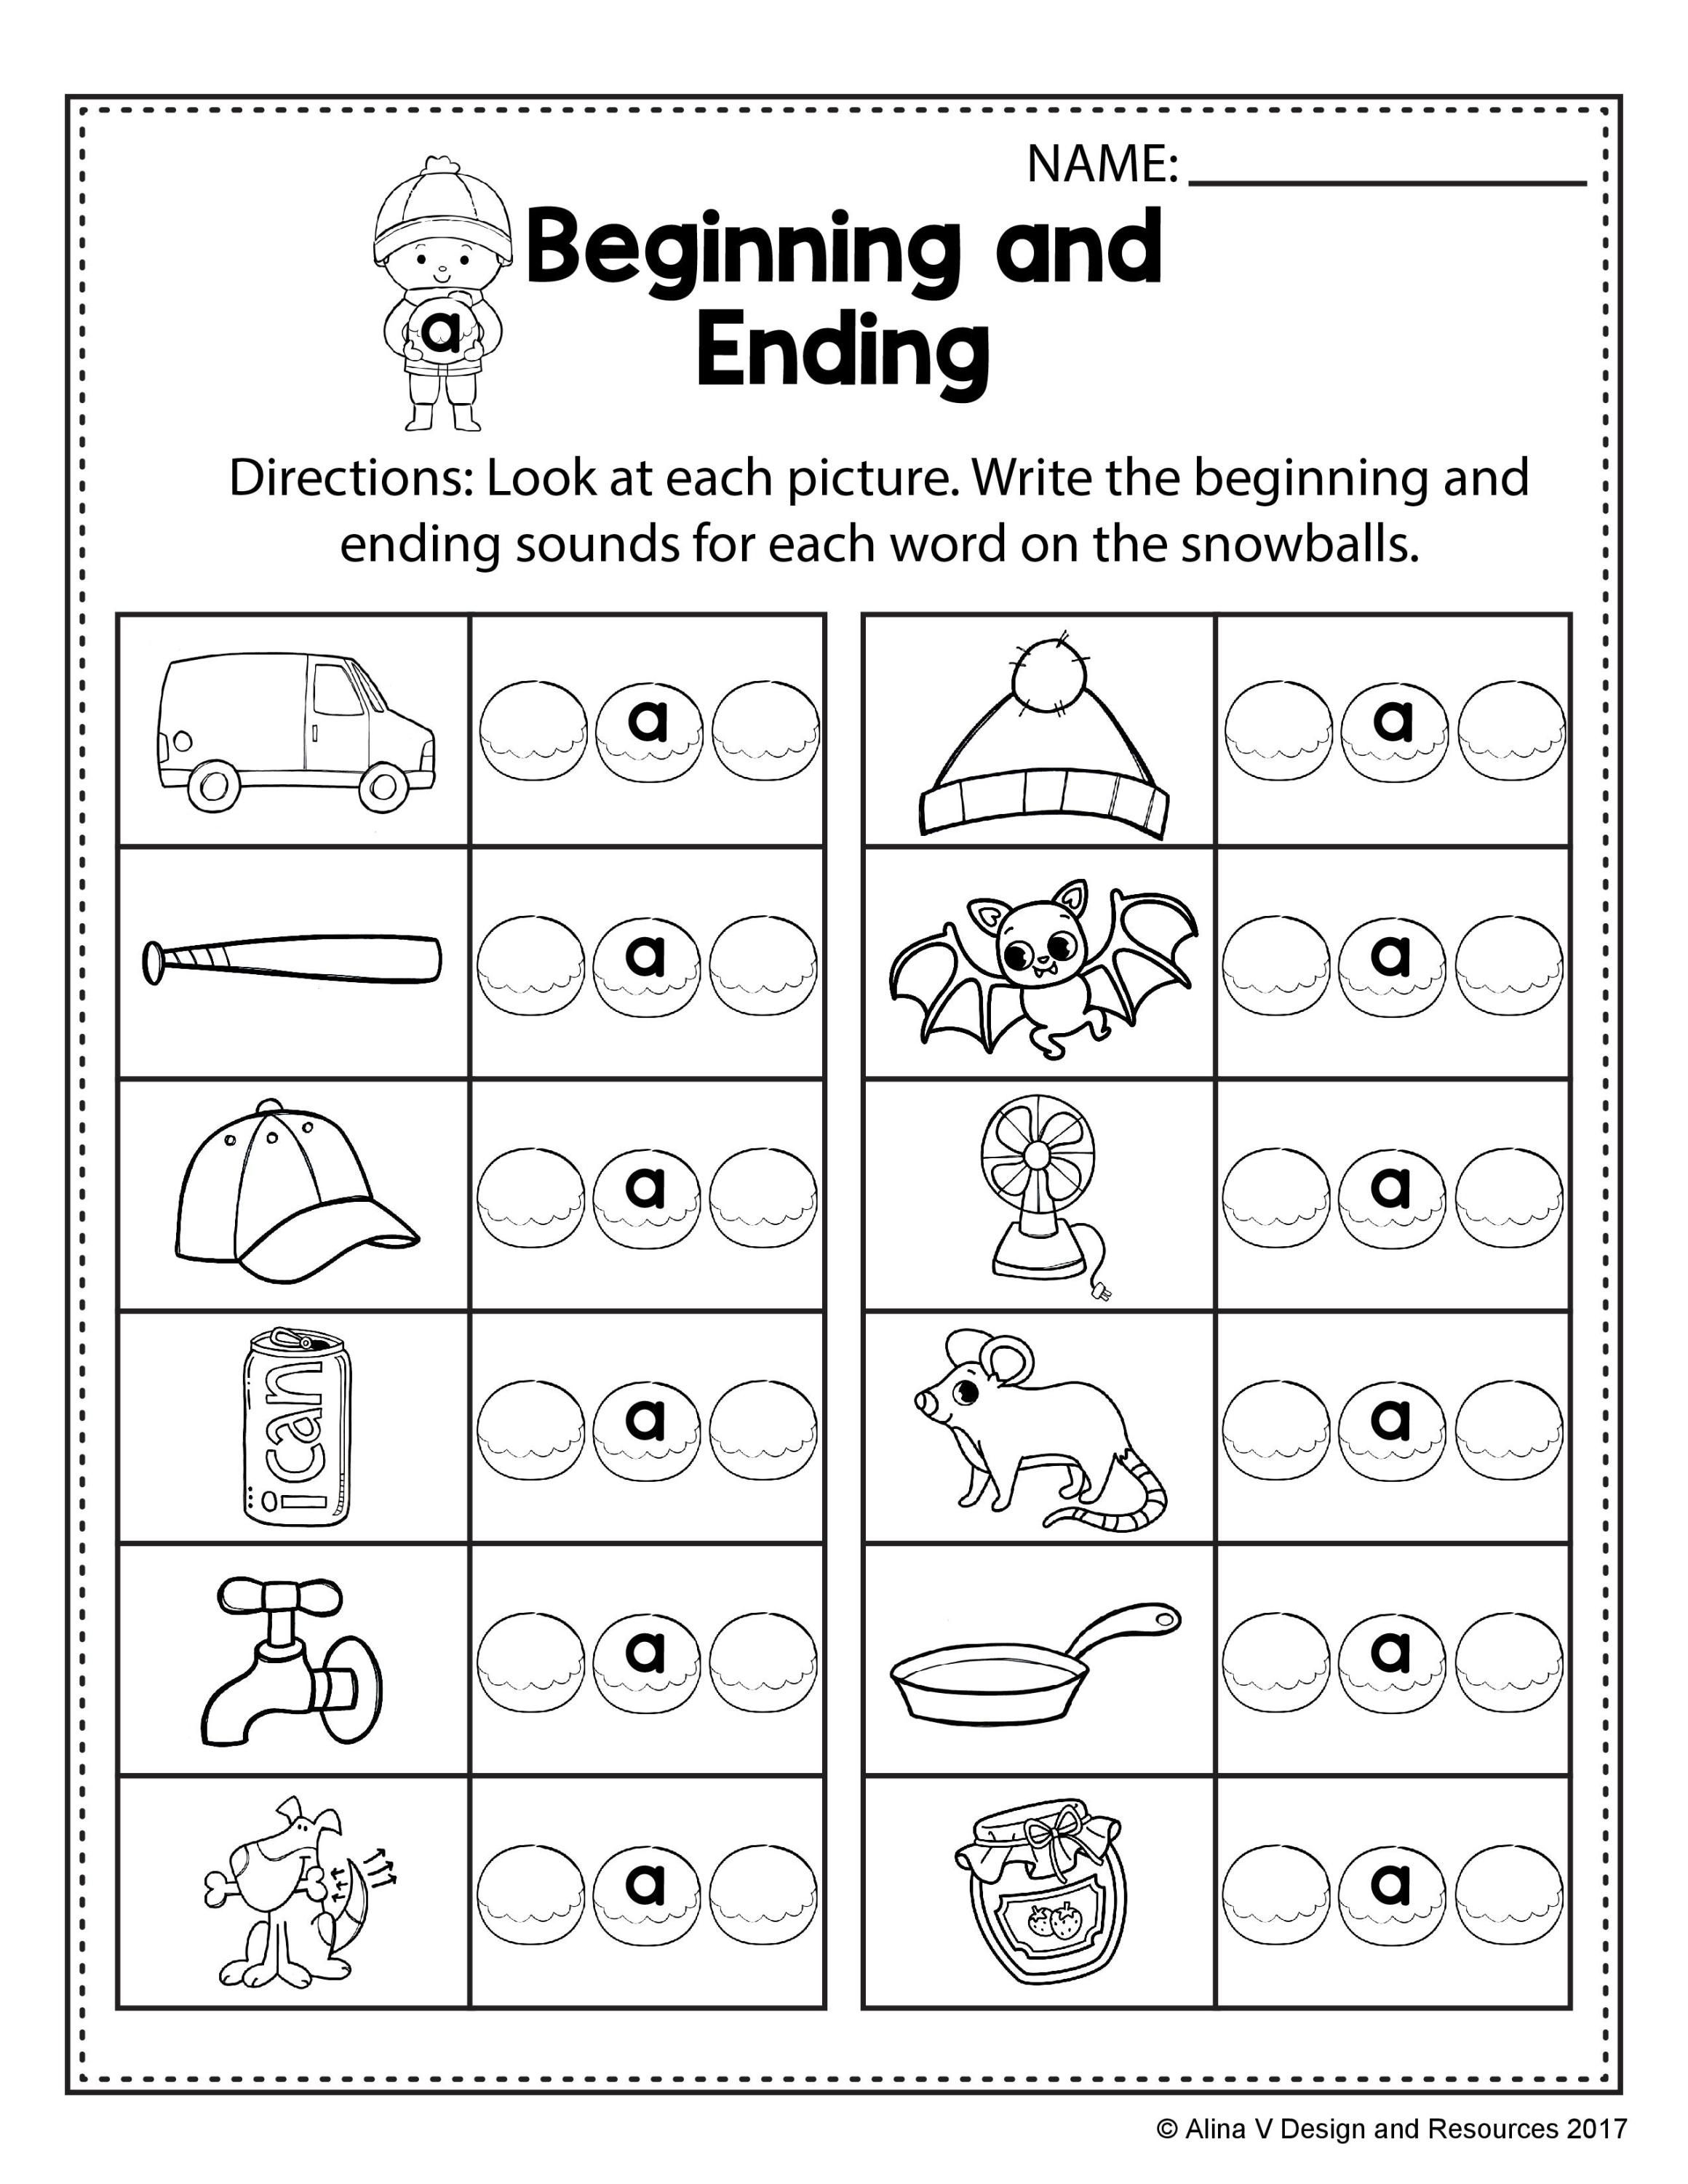 Worksheets Beginning And Ending Sounds Worksheets free winter literacy worksheet for kindergarten no prep beginning and ending sounds practice with short a words cvc worksheets